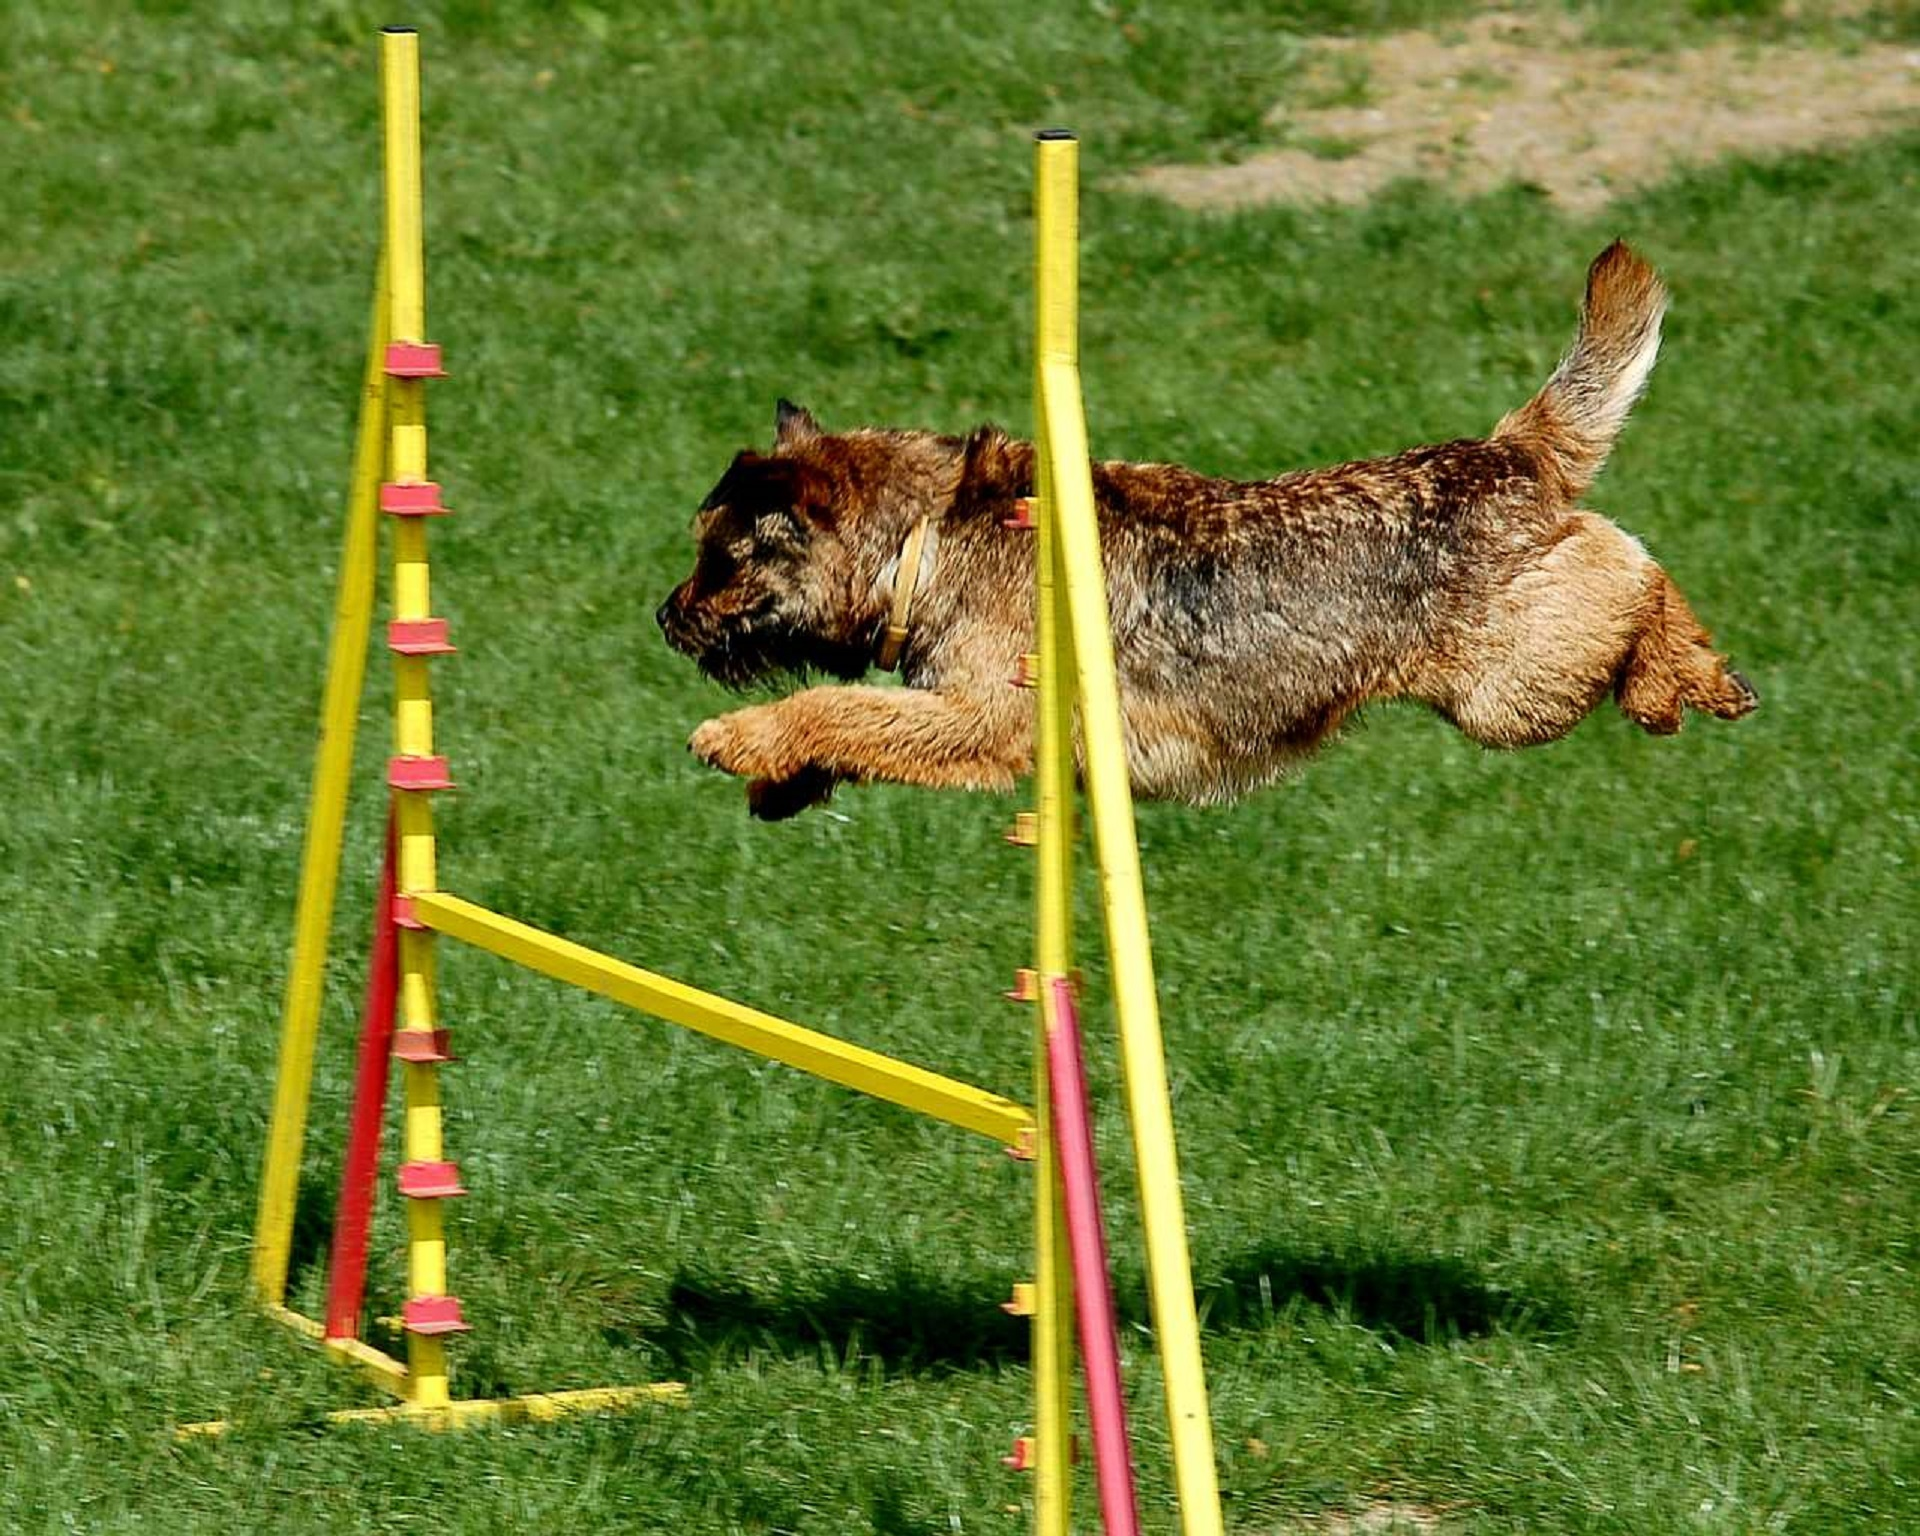 Dog Passing Obstacles, Animal, Competition, Dog, Nature, HQ Photo